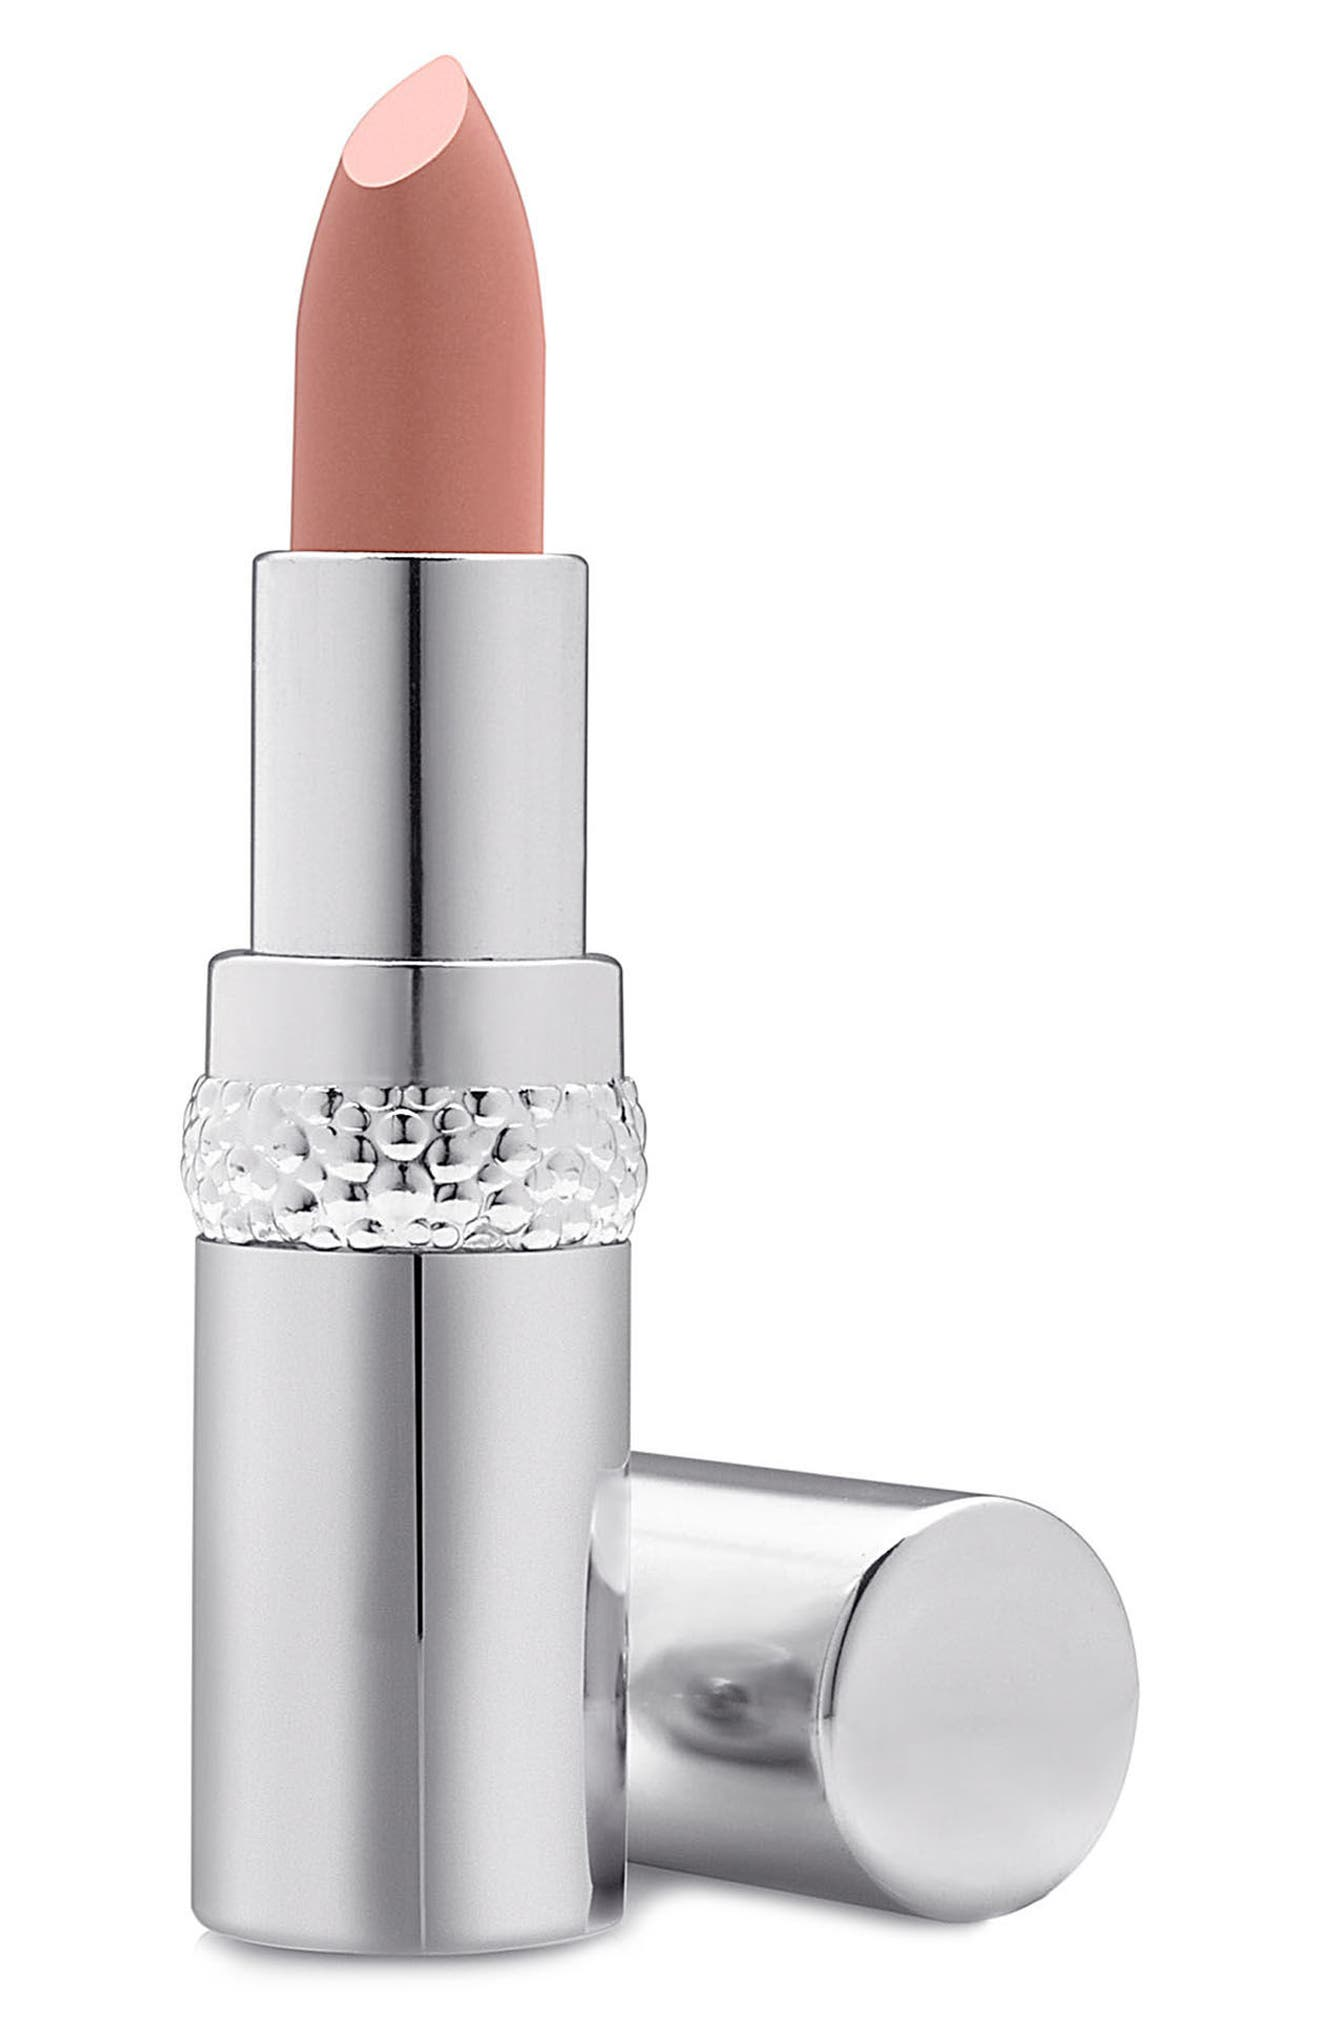 LA PRAIRIE Cellular Lip Enhancer